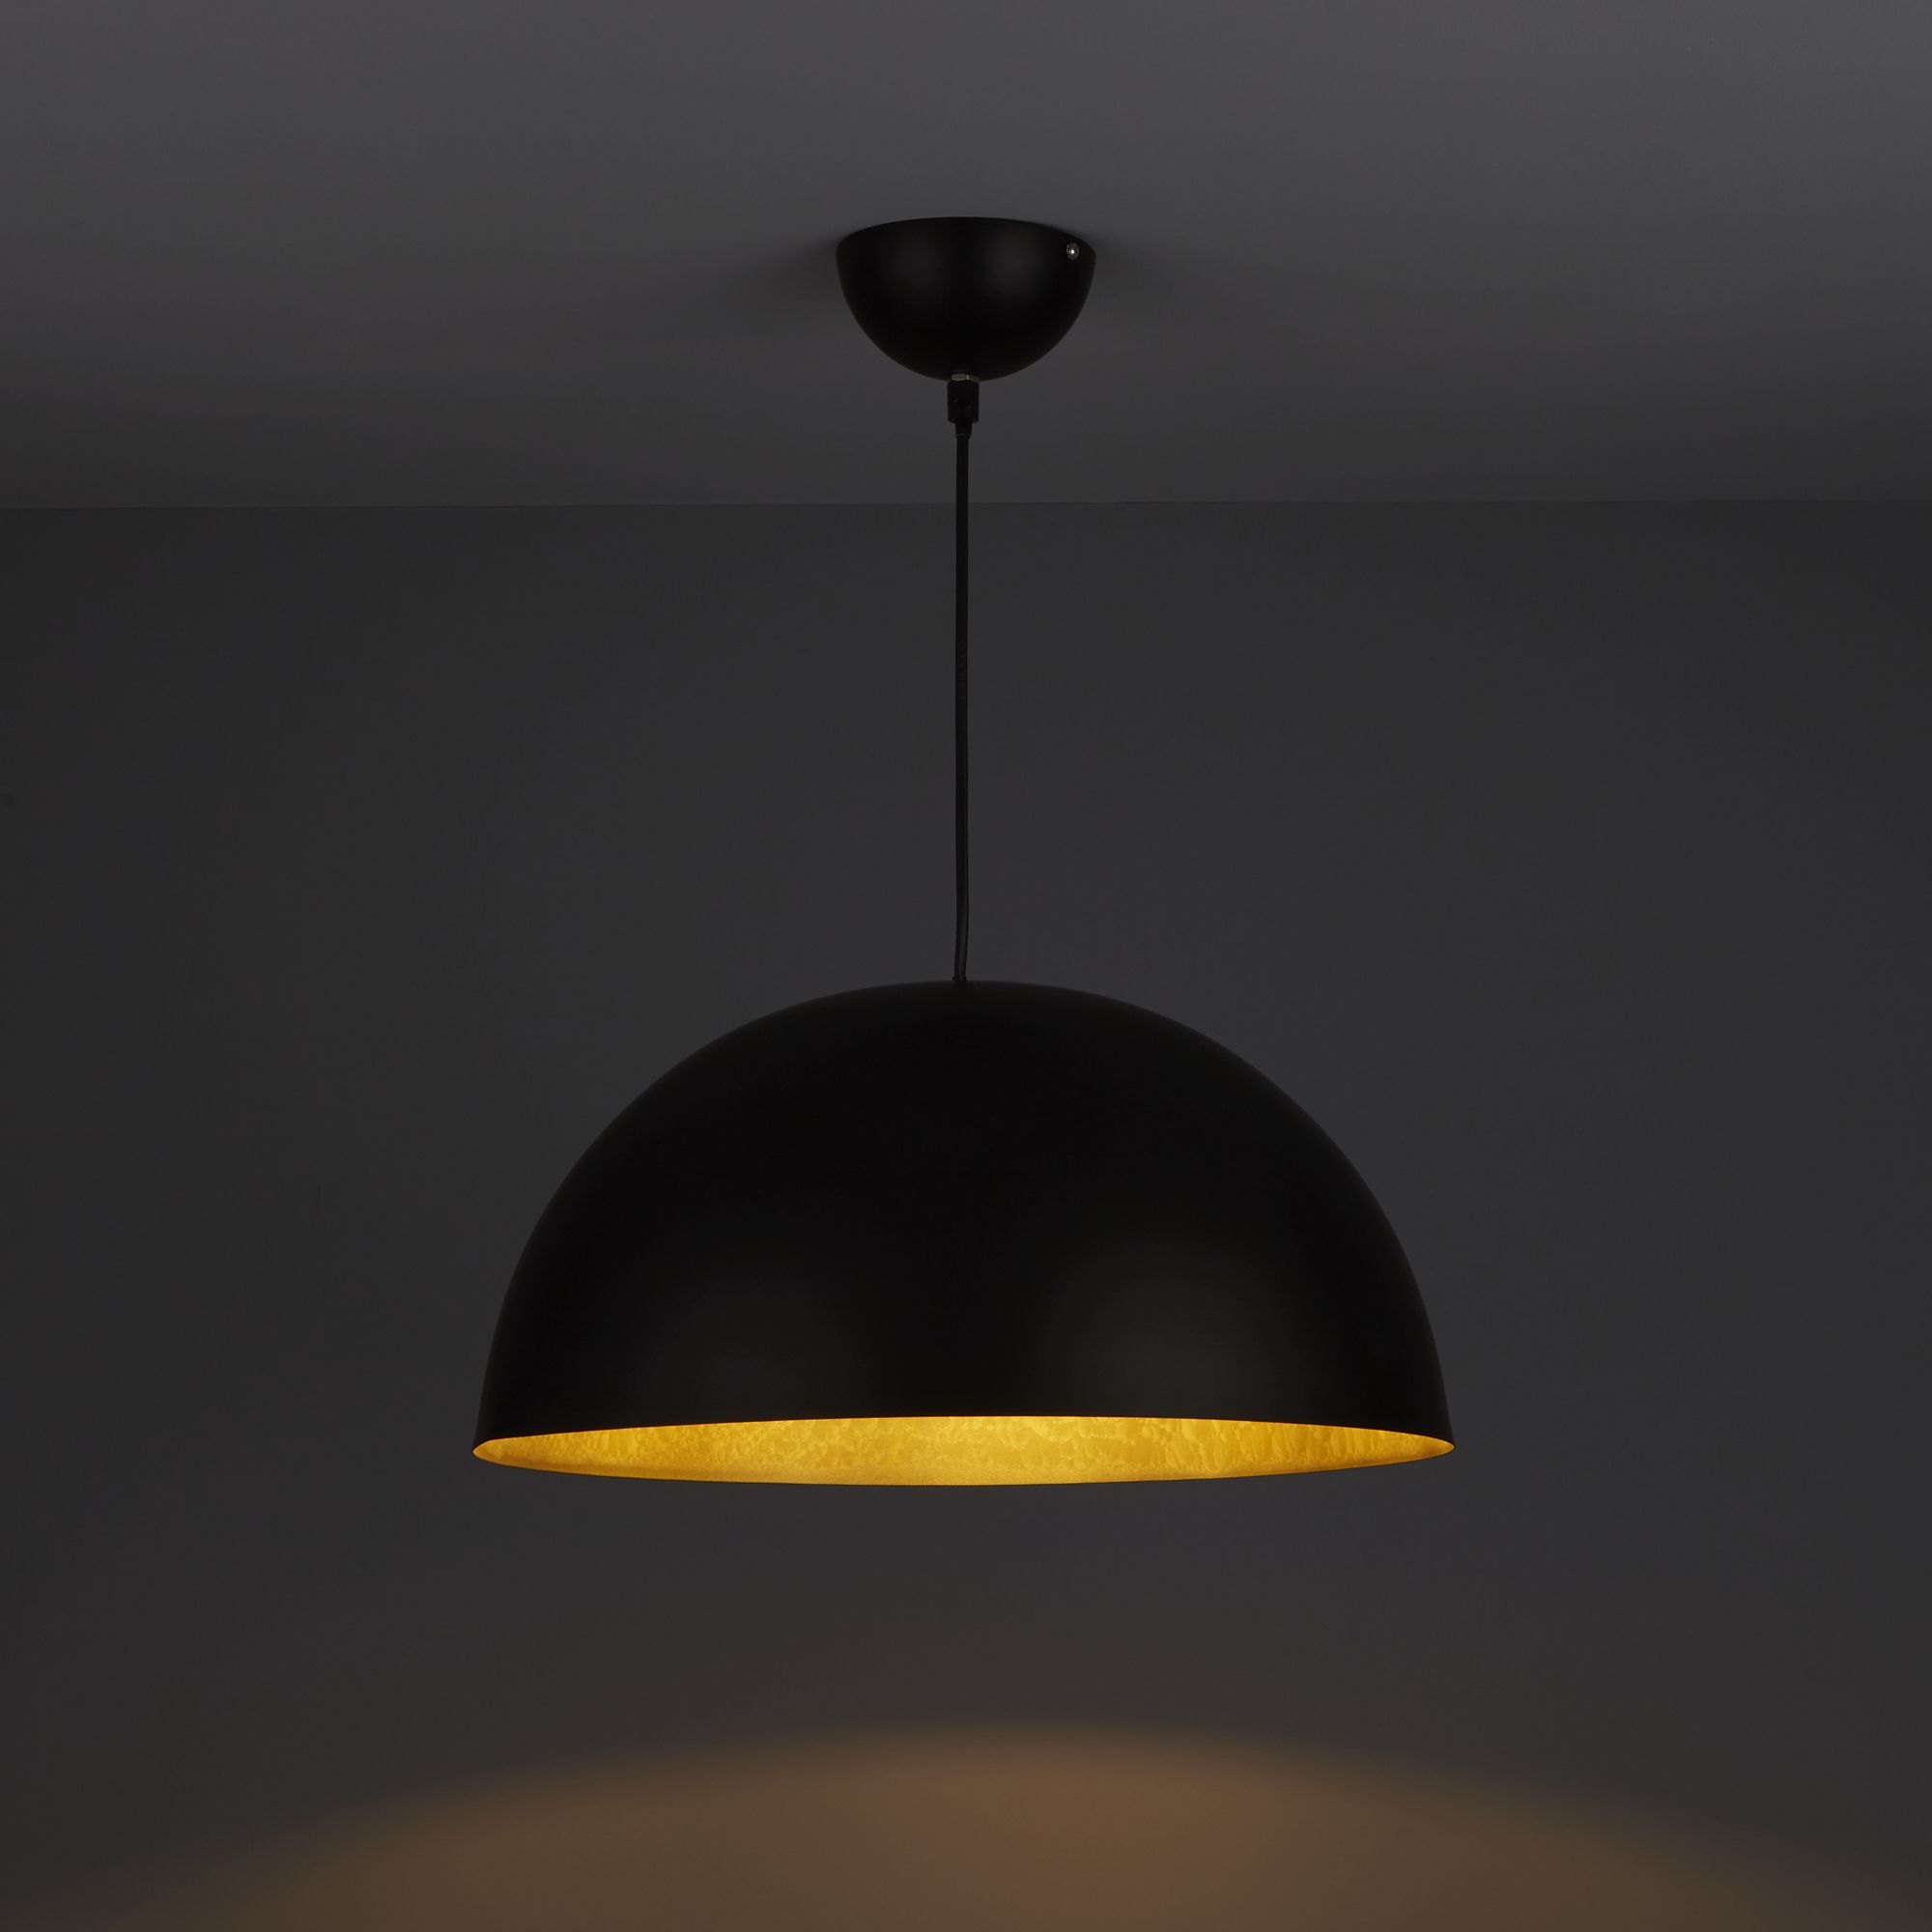 Kapsel Dome Black Pendant Ceiling Light Departments Diy At B Amp Q